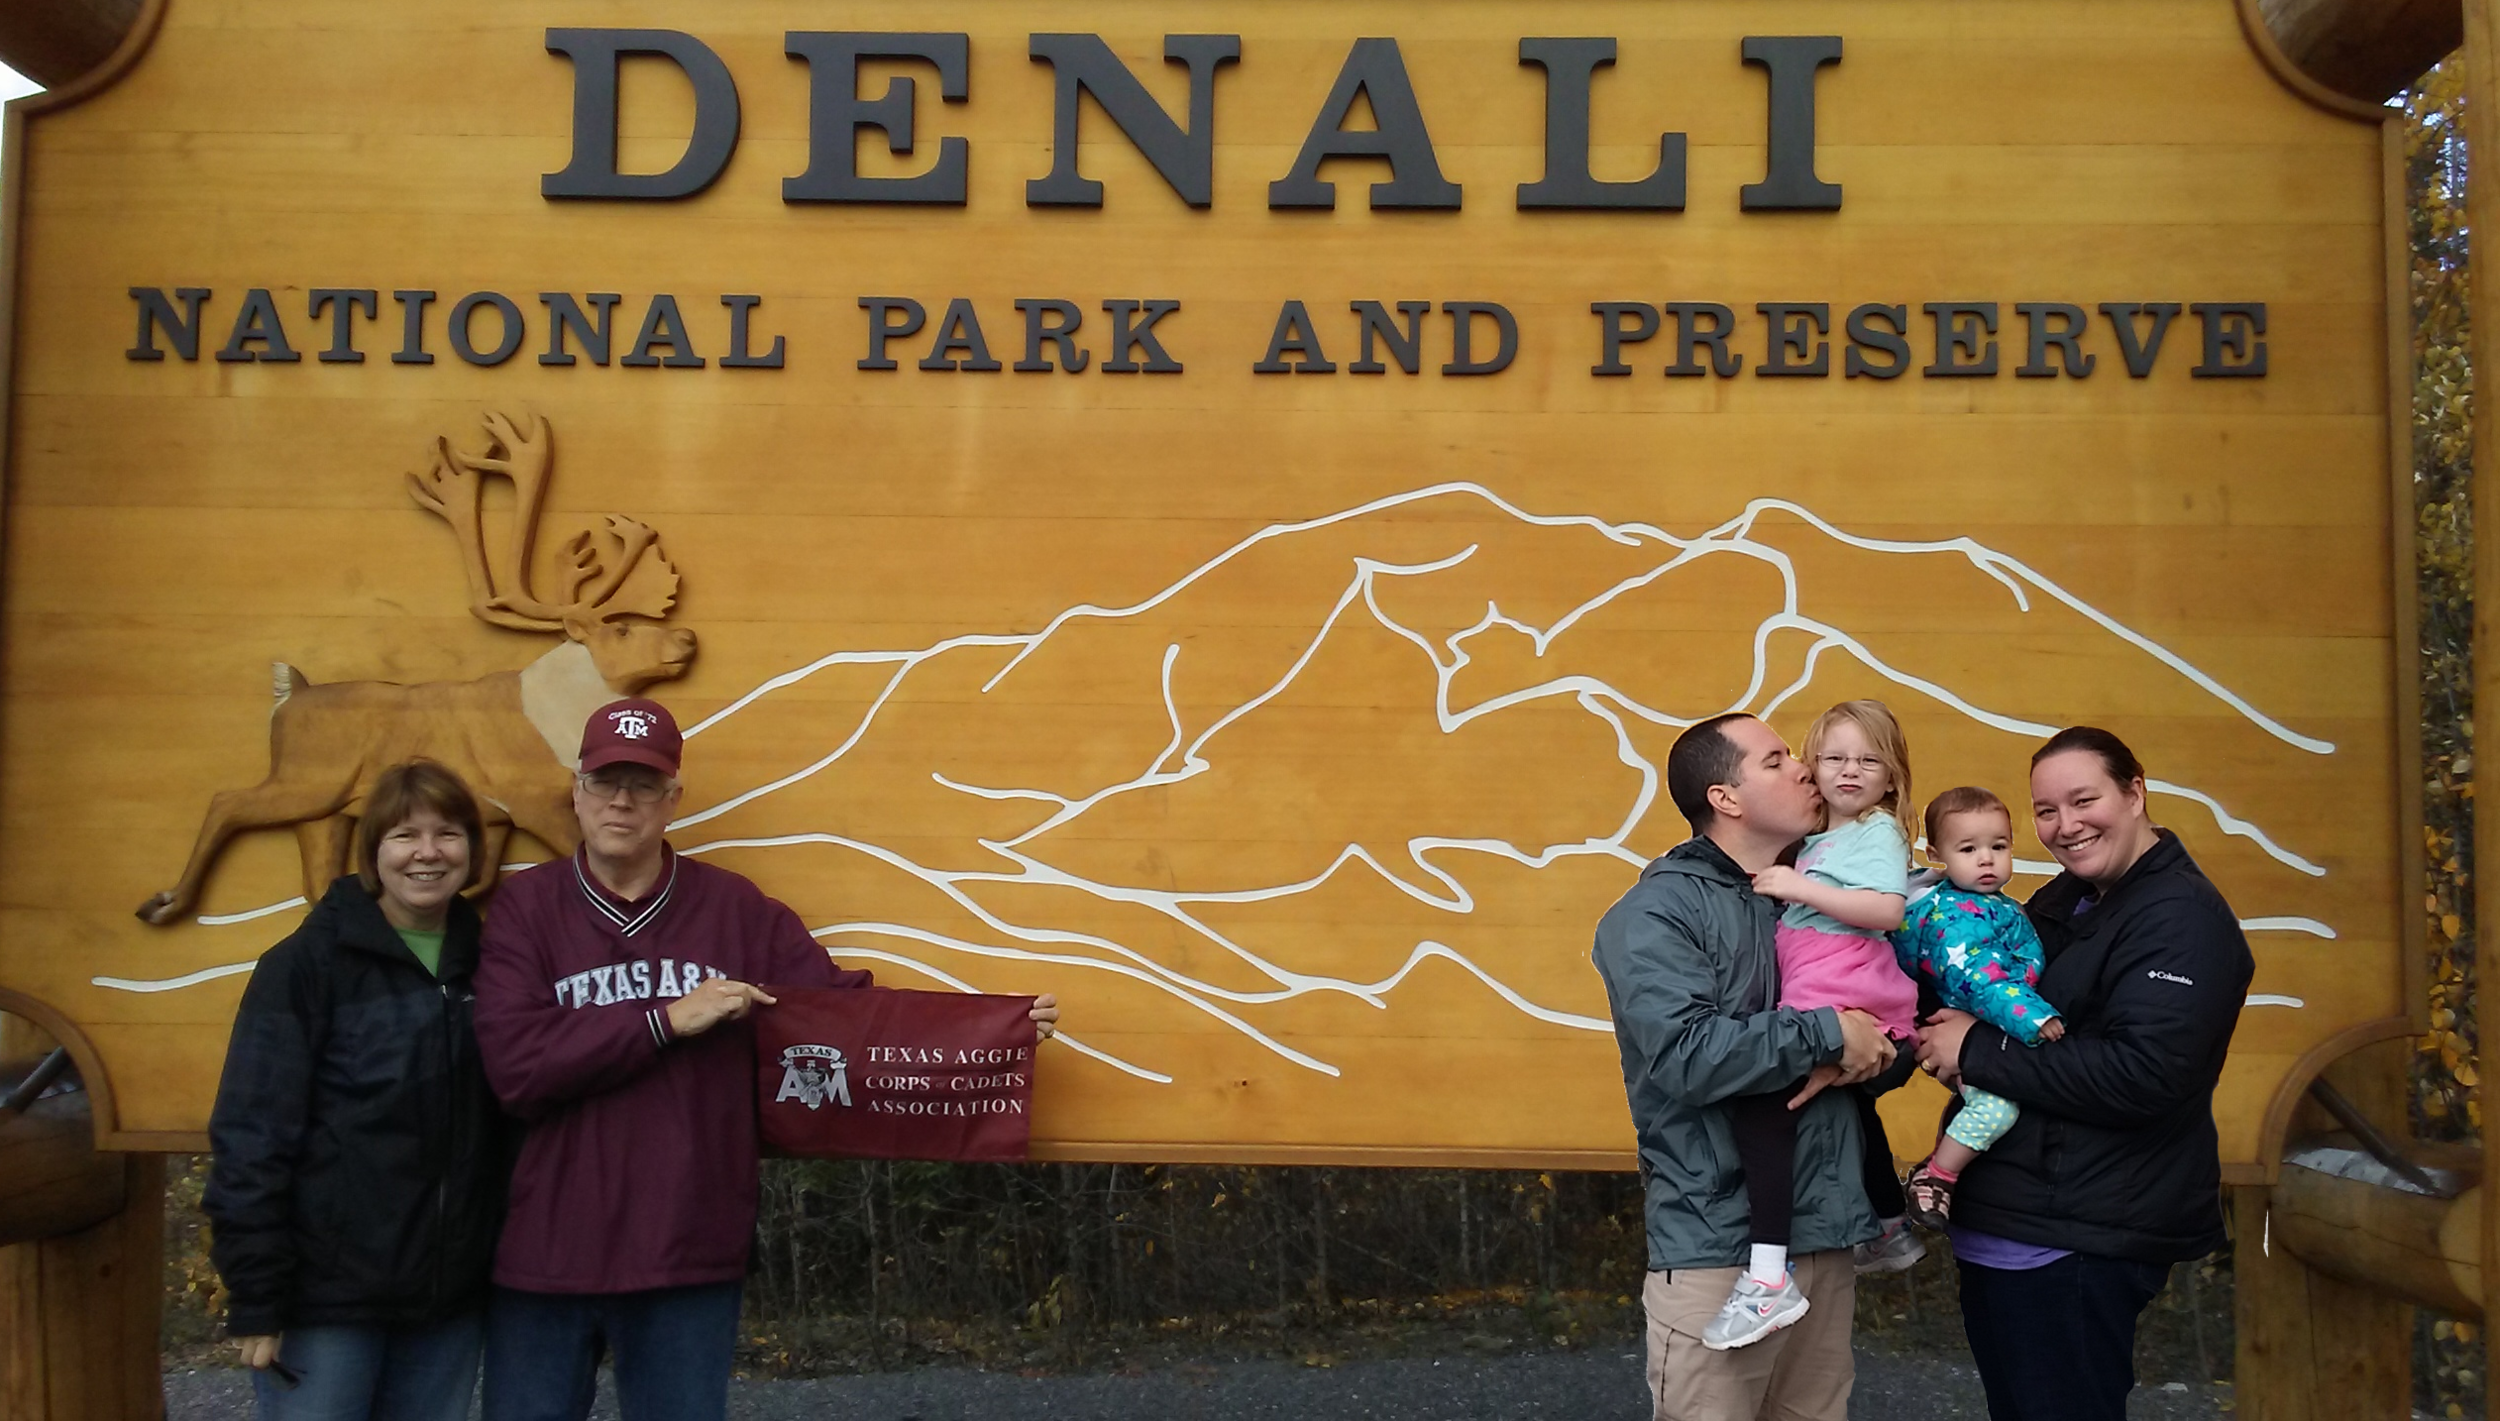 Dick Owen '72 and his wife Joan celebrated their 43rd anniversary at Denali National Park in central Alaska. Their son, SSgt Johnathan Owen, his wife Carol, and two granddaughters.png